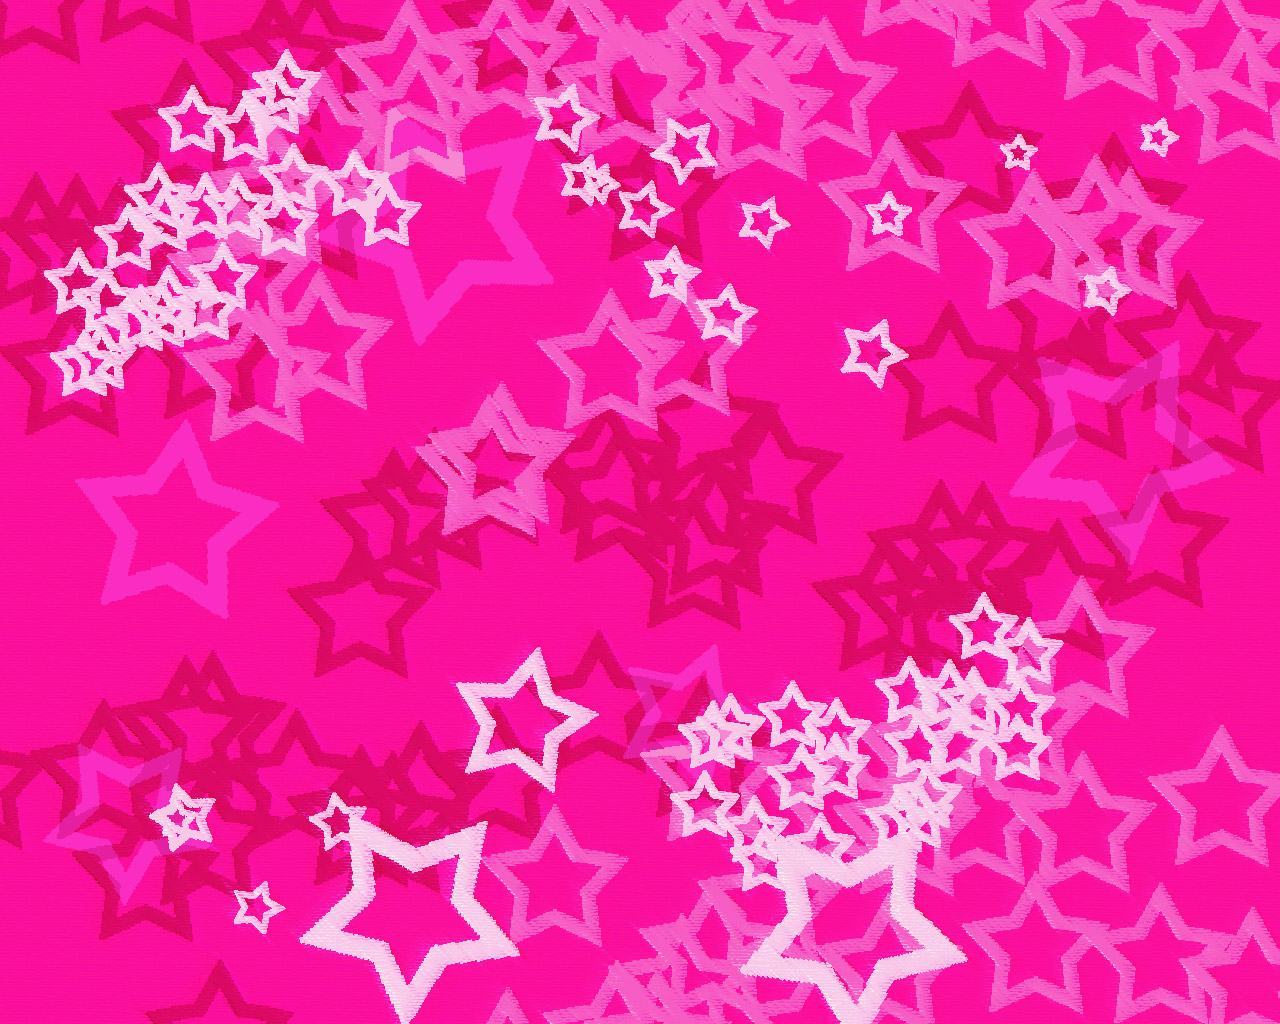 pink desktop backgrounds pink desktop backgrounds Desktop 1280x1024